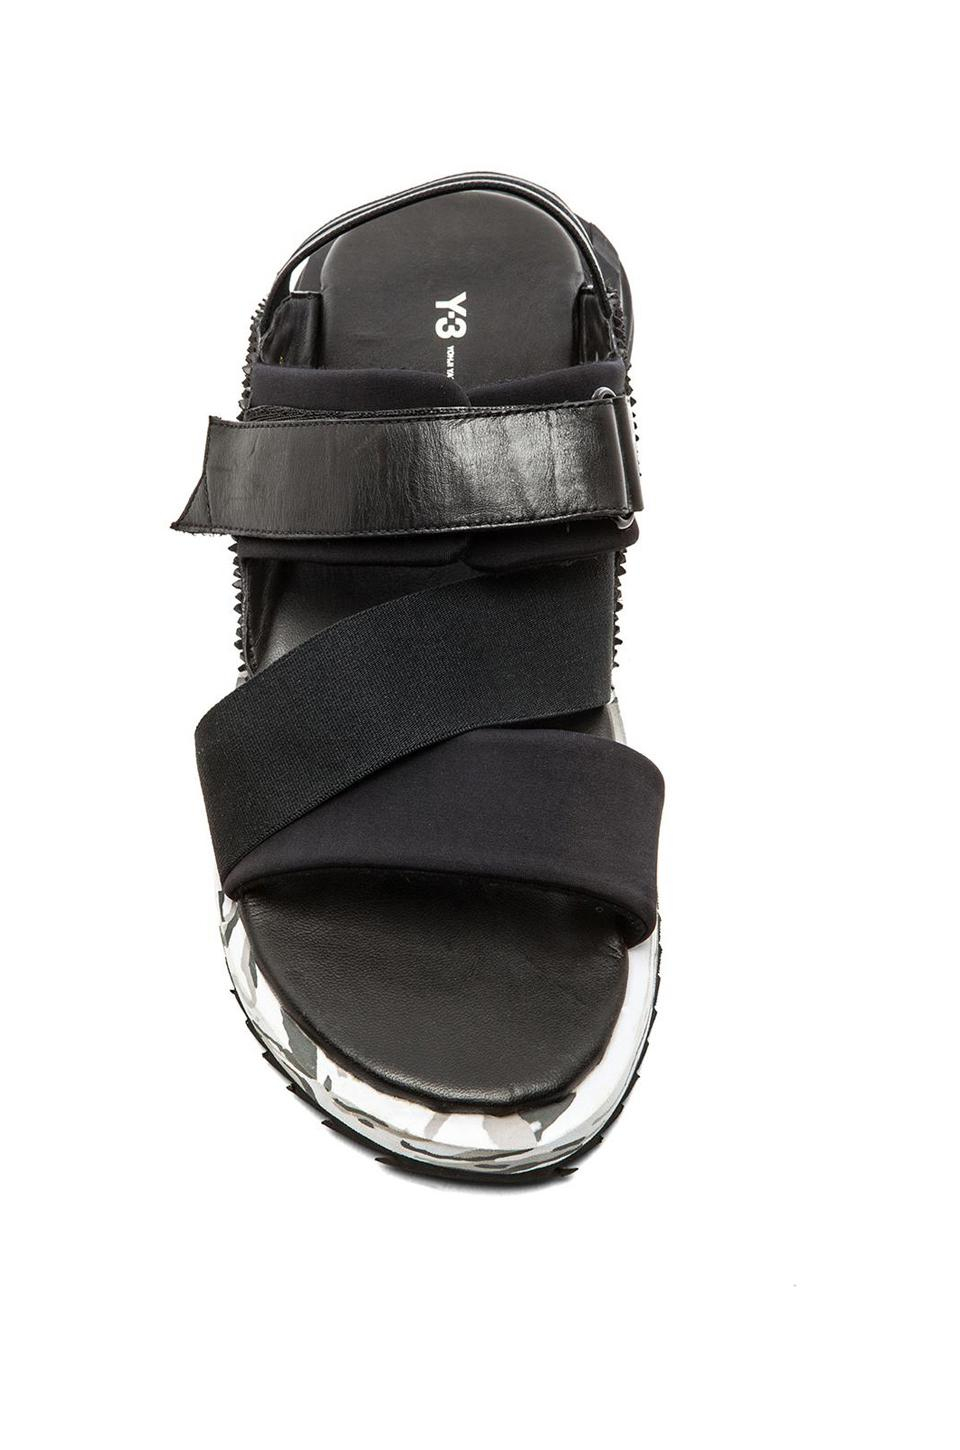 ee5a60cc8 Lyst - Y-3 Kaohe Sandal in Black for Men